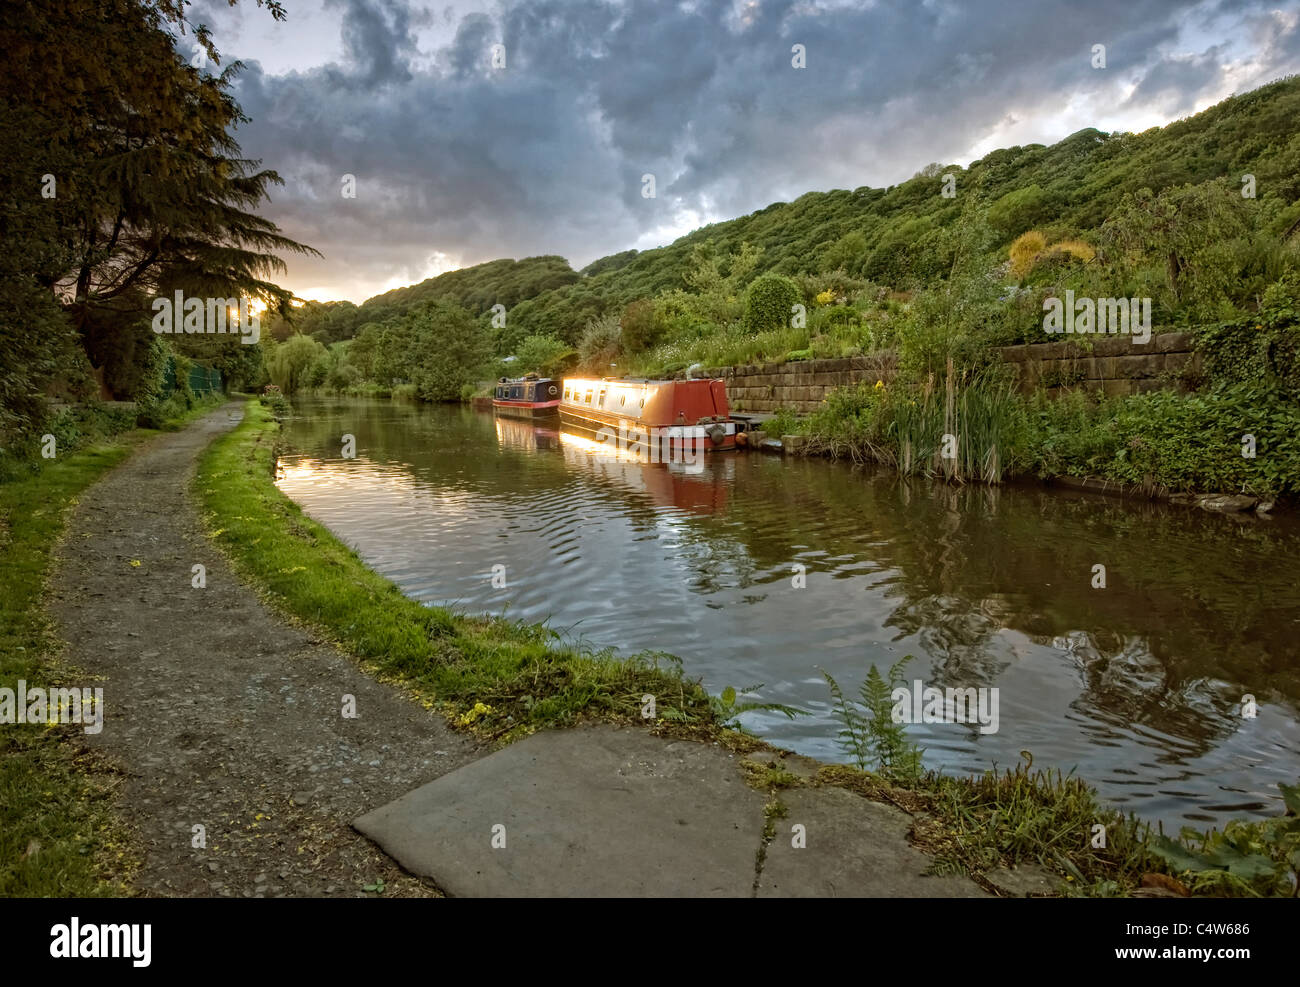 canal narrowboat on the rochdale canal sidelit by the warm glow of sunset Stock Photo